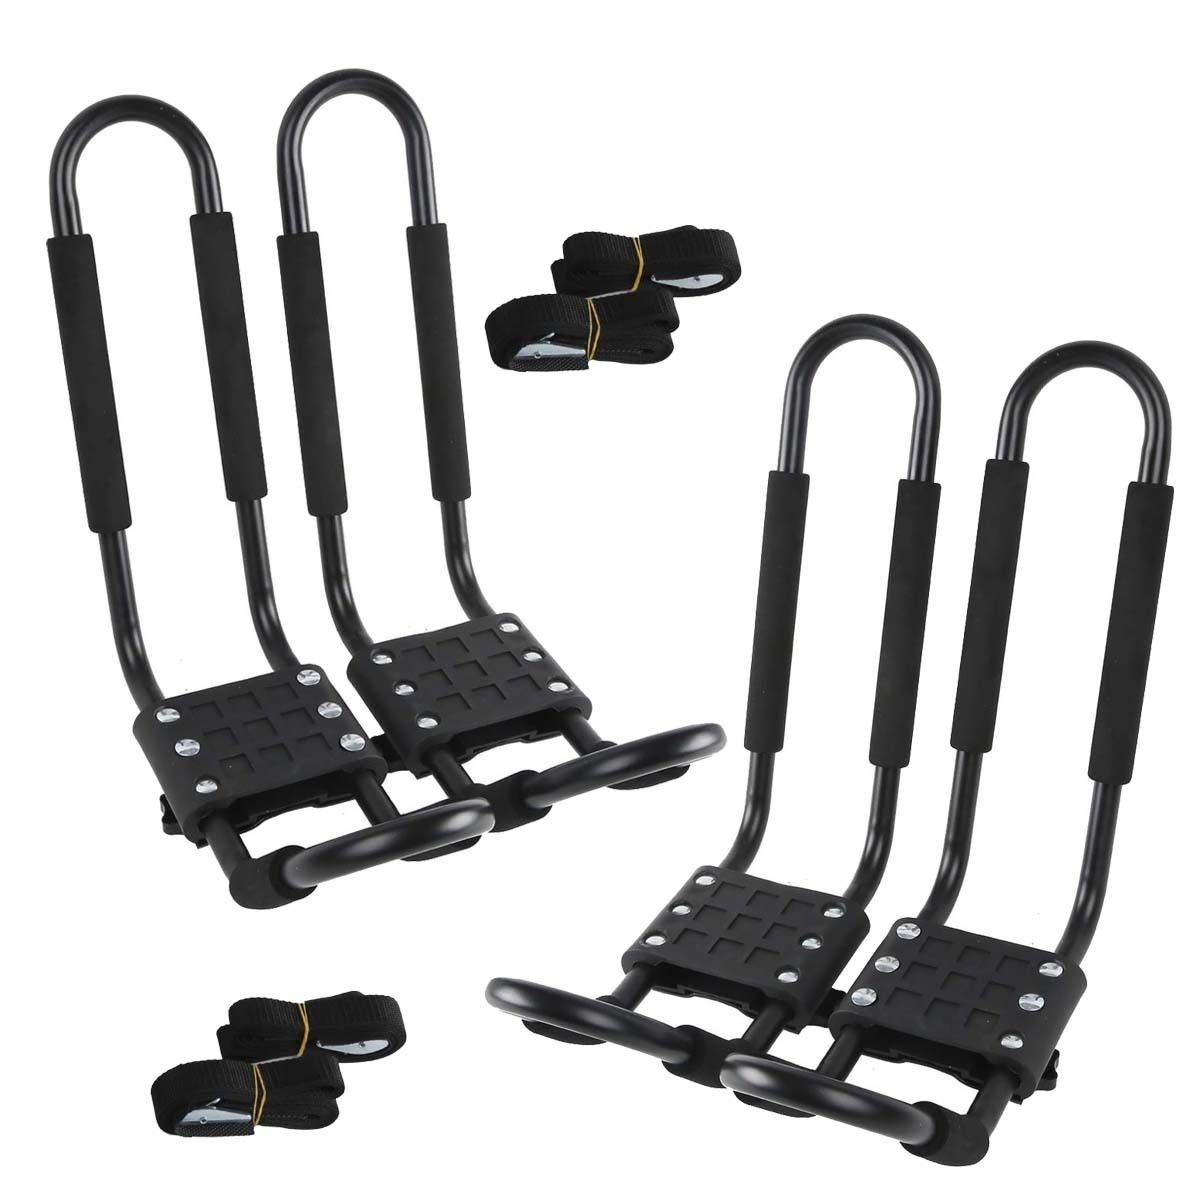 TC-Home 2 Pairs J-Bar Rack Kayak Holder 150 lbs Universal Roof Boat Canoe Car SUV Top Mount Carrier New